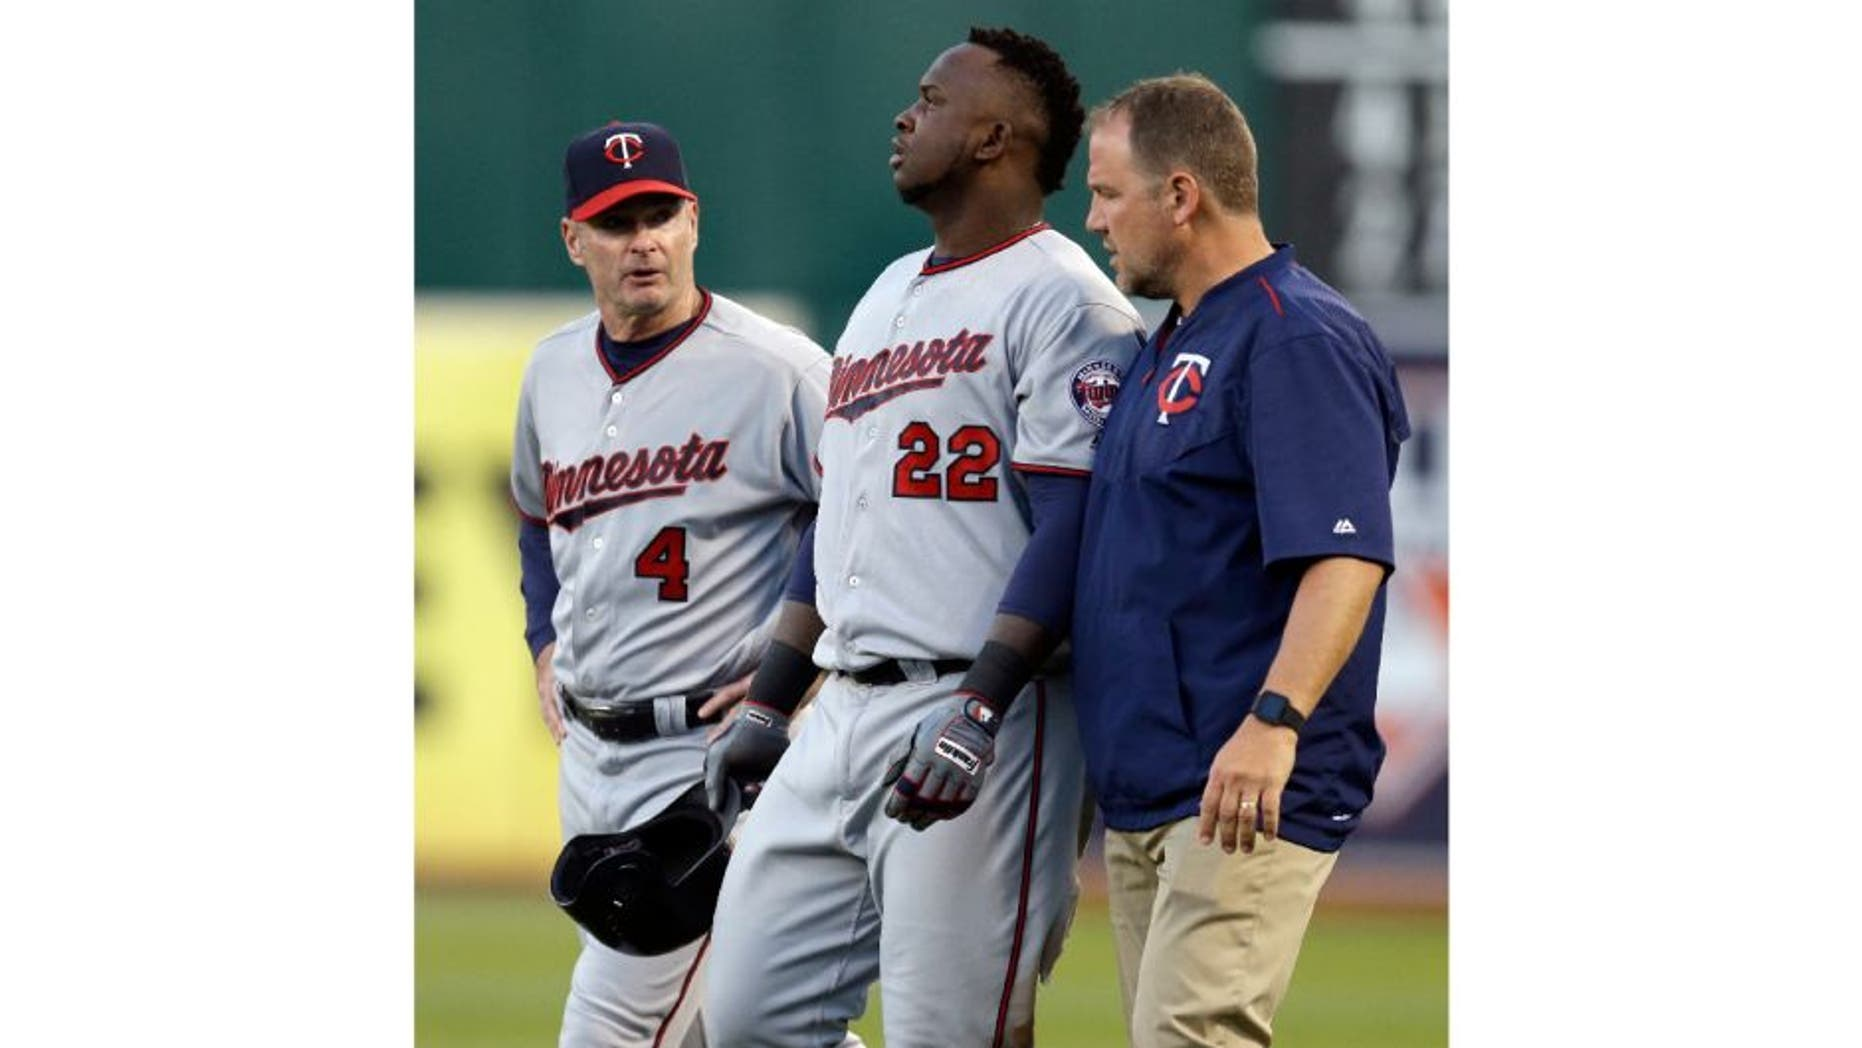 Minnesota Twins manager Paul Molitor, left, and a trainer walk Miguel Sano off the field after an injury sustained in the third inning of a baseball game against the Oakland Athletics.